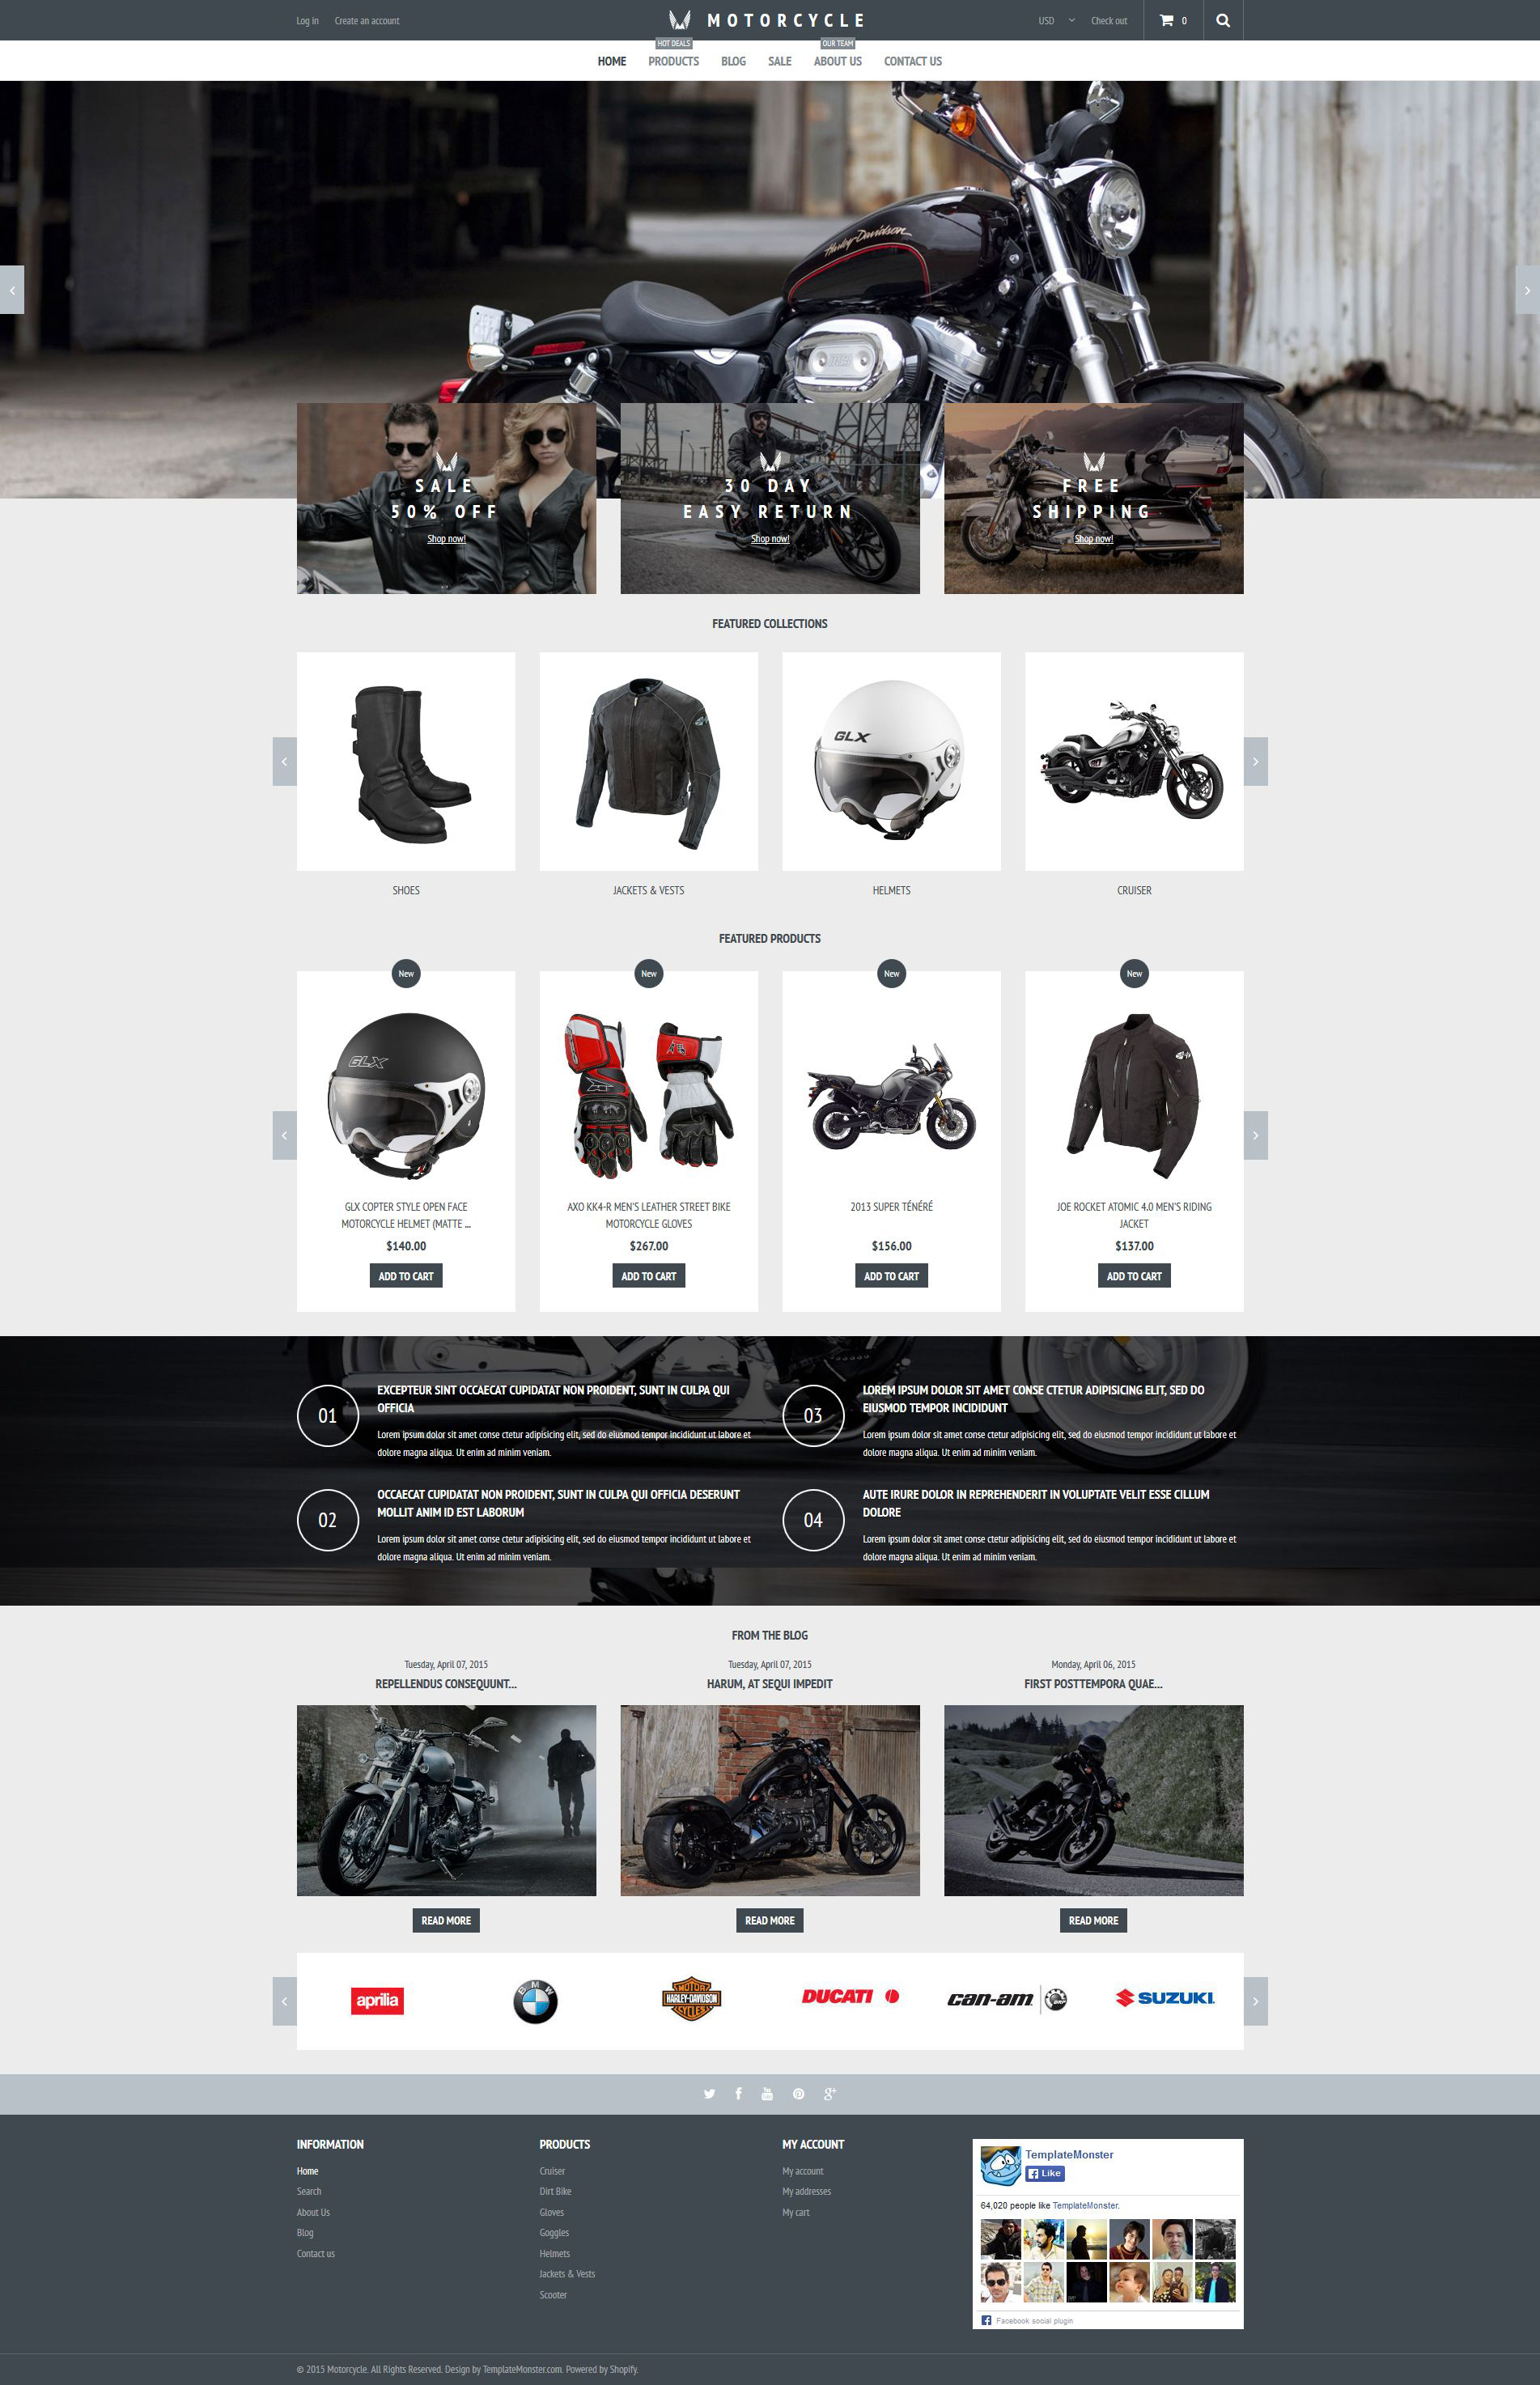 The Bikes Moto Shopify Design 53768, one of the best Shopify themes of its kind (cars, most popular), also known as bikes moto Shopify template, motor store Shopify template, helmets Shopify template, gear Shopify template, scooter Shopify template, snowmobile Shopify template, parts Shopify template, accessories Shopify template, tires Shopify template, closeouts and related with bikes moto, motor store, helmets, gear, scooter, snowmobile, parts, accessories, tires, closeouts, etc.